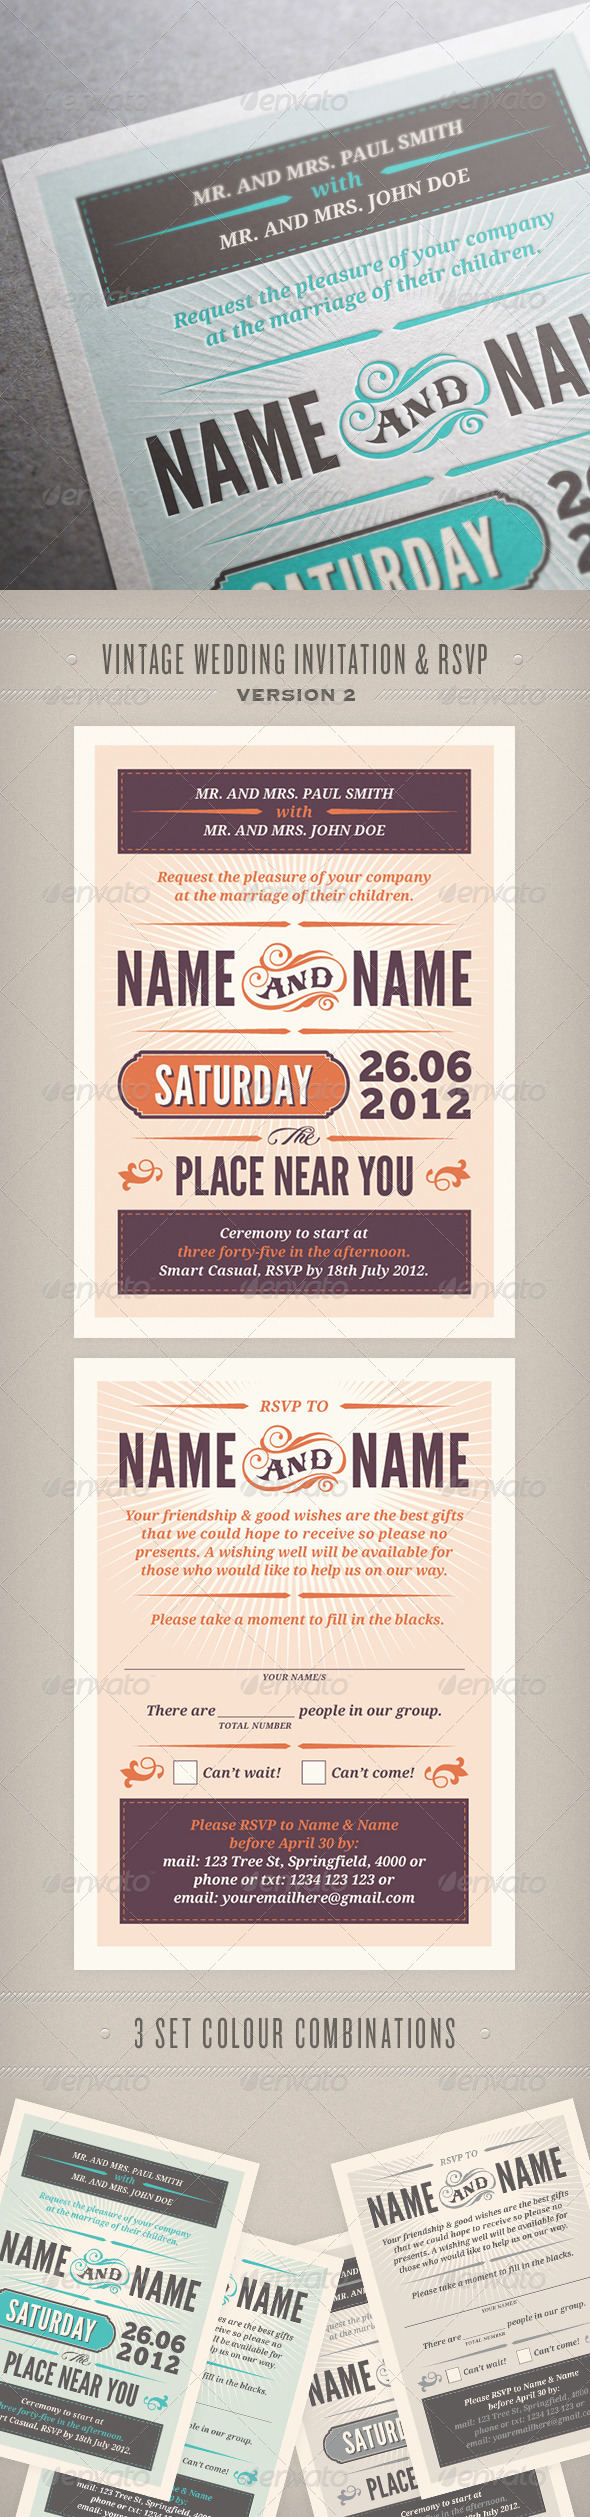 Rustic Wedding Invitation & RSVP